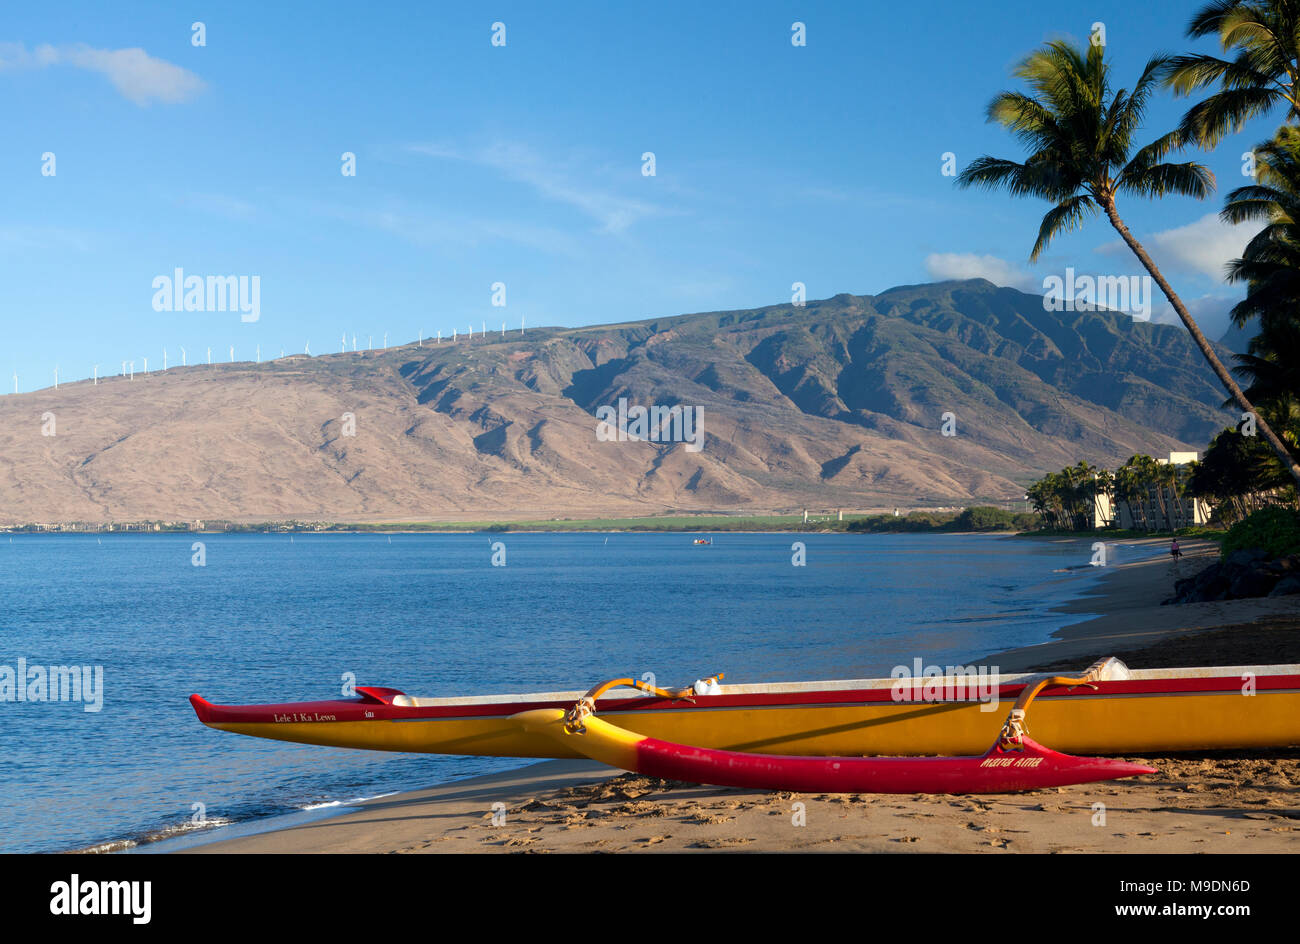 Outrigger canoe at Sugar Beach, Kihei, Maui, Hawaii.  The West Maui Mountains are in the background. - Stock Image